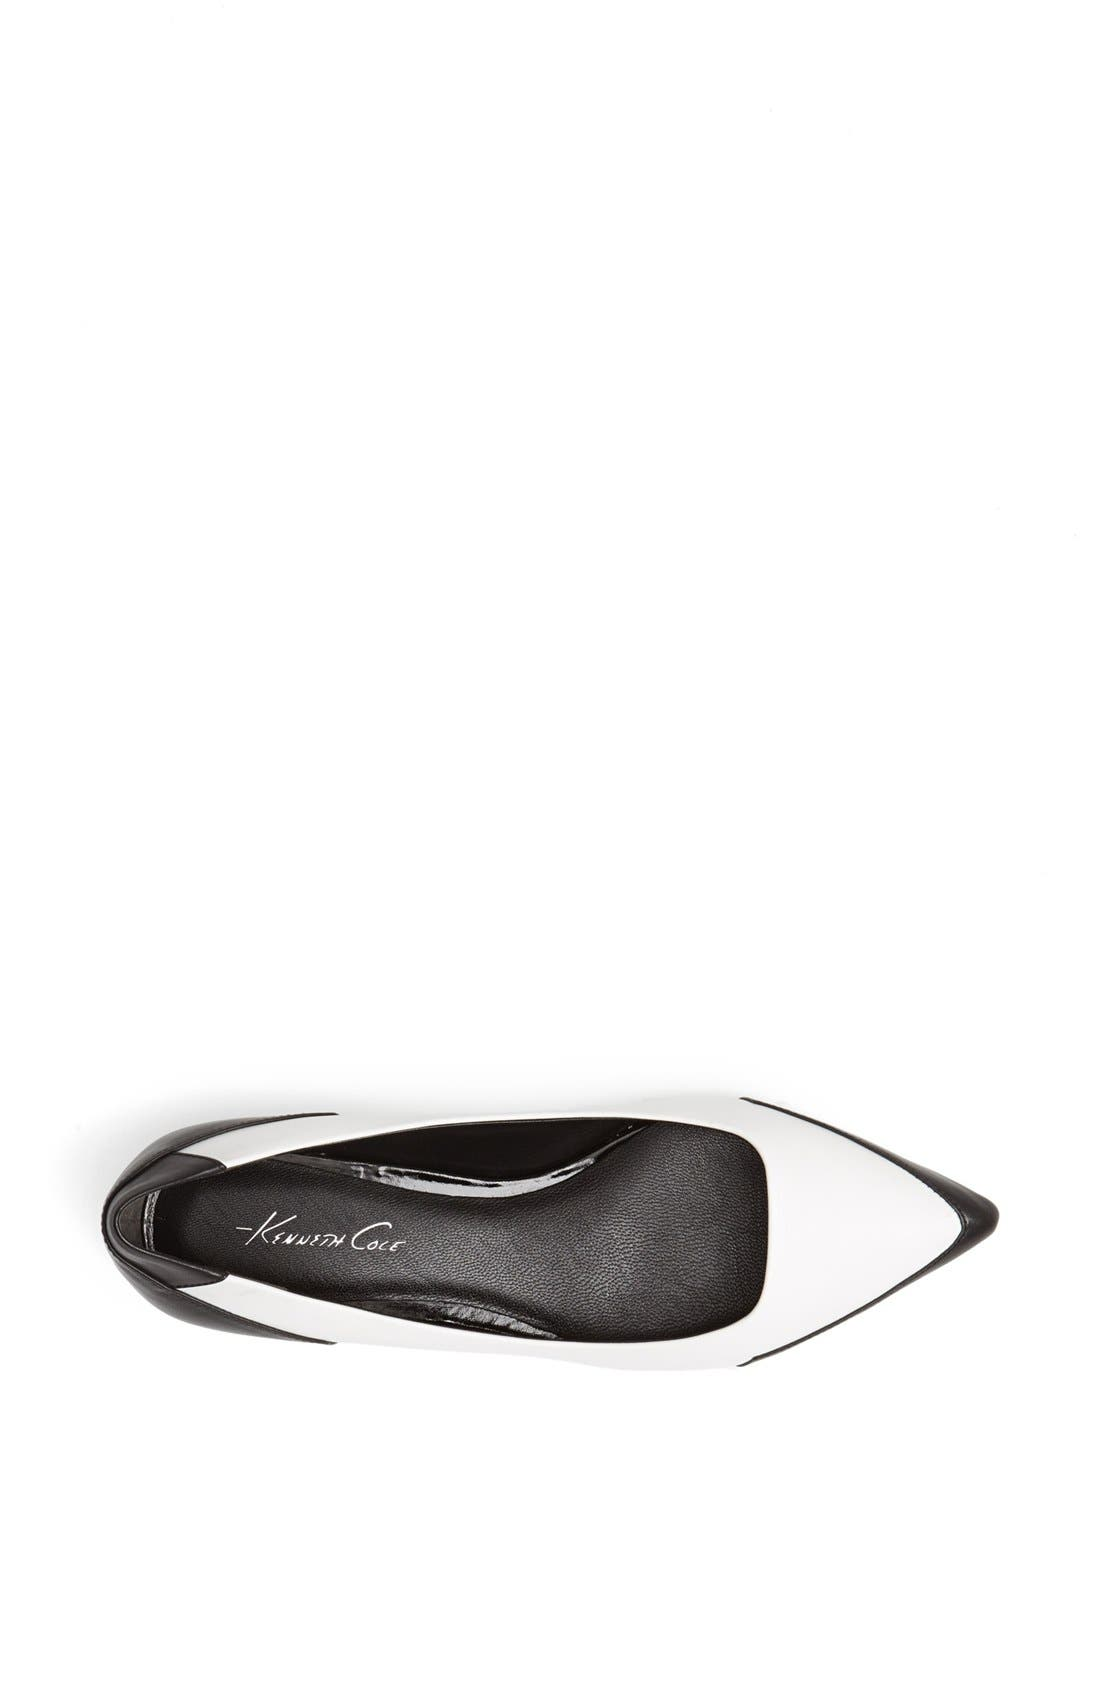 Alternate Image 3  - Kenneth Cole New York 'Mulberry' Leather Flat